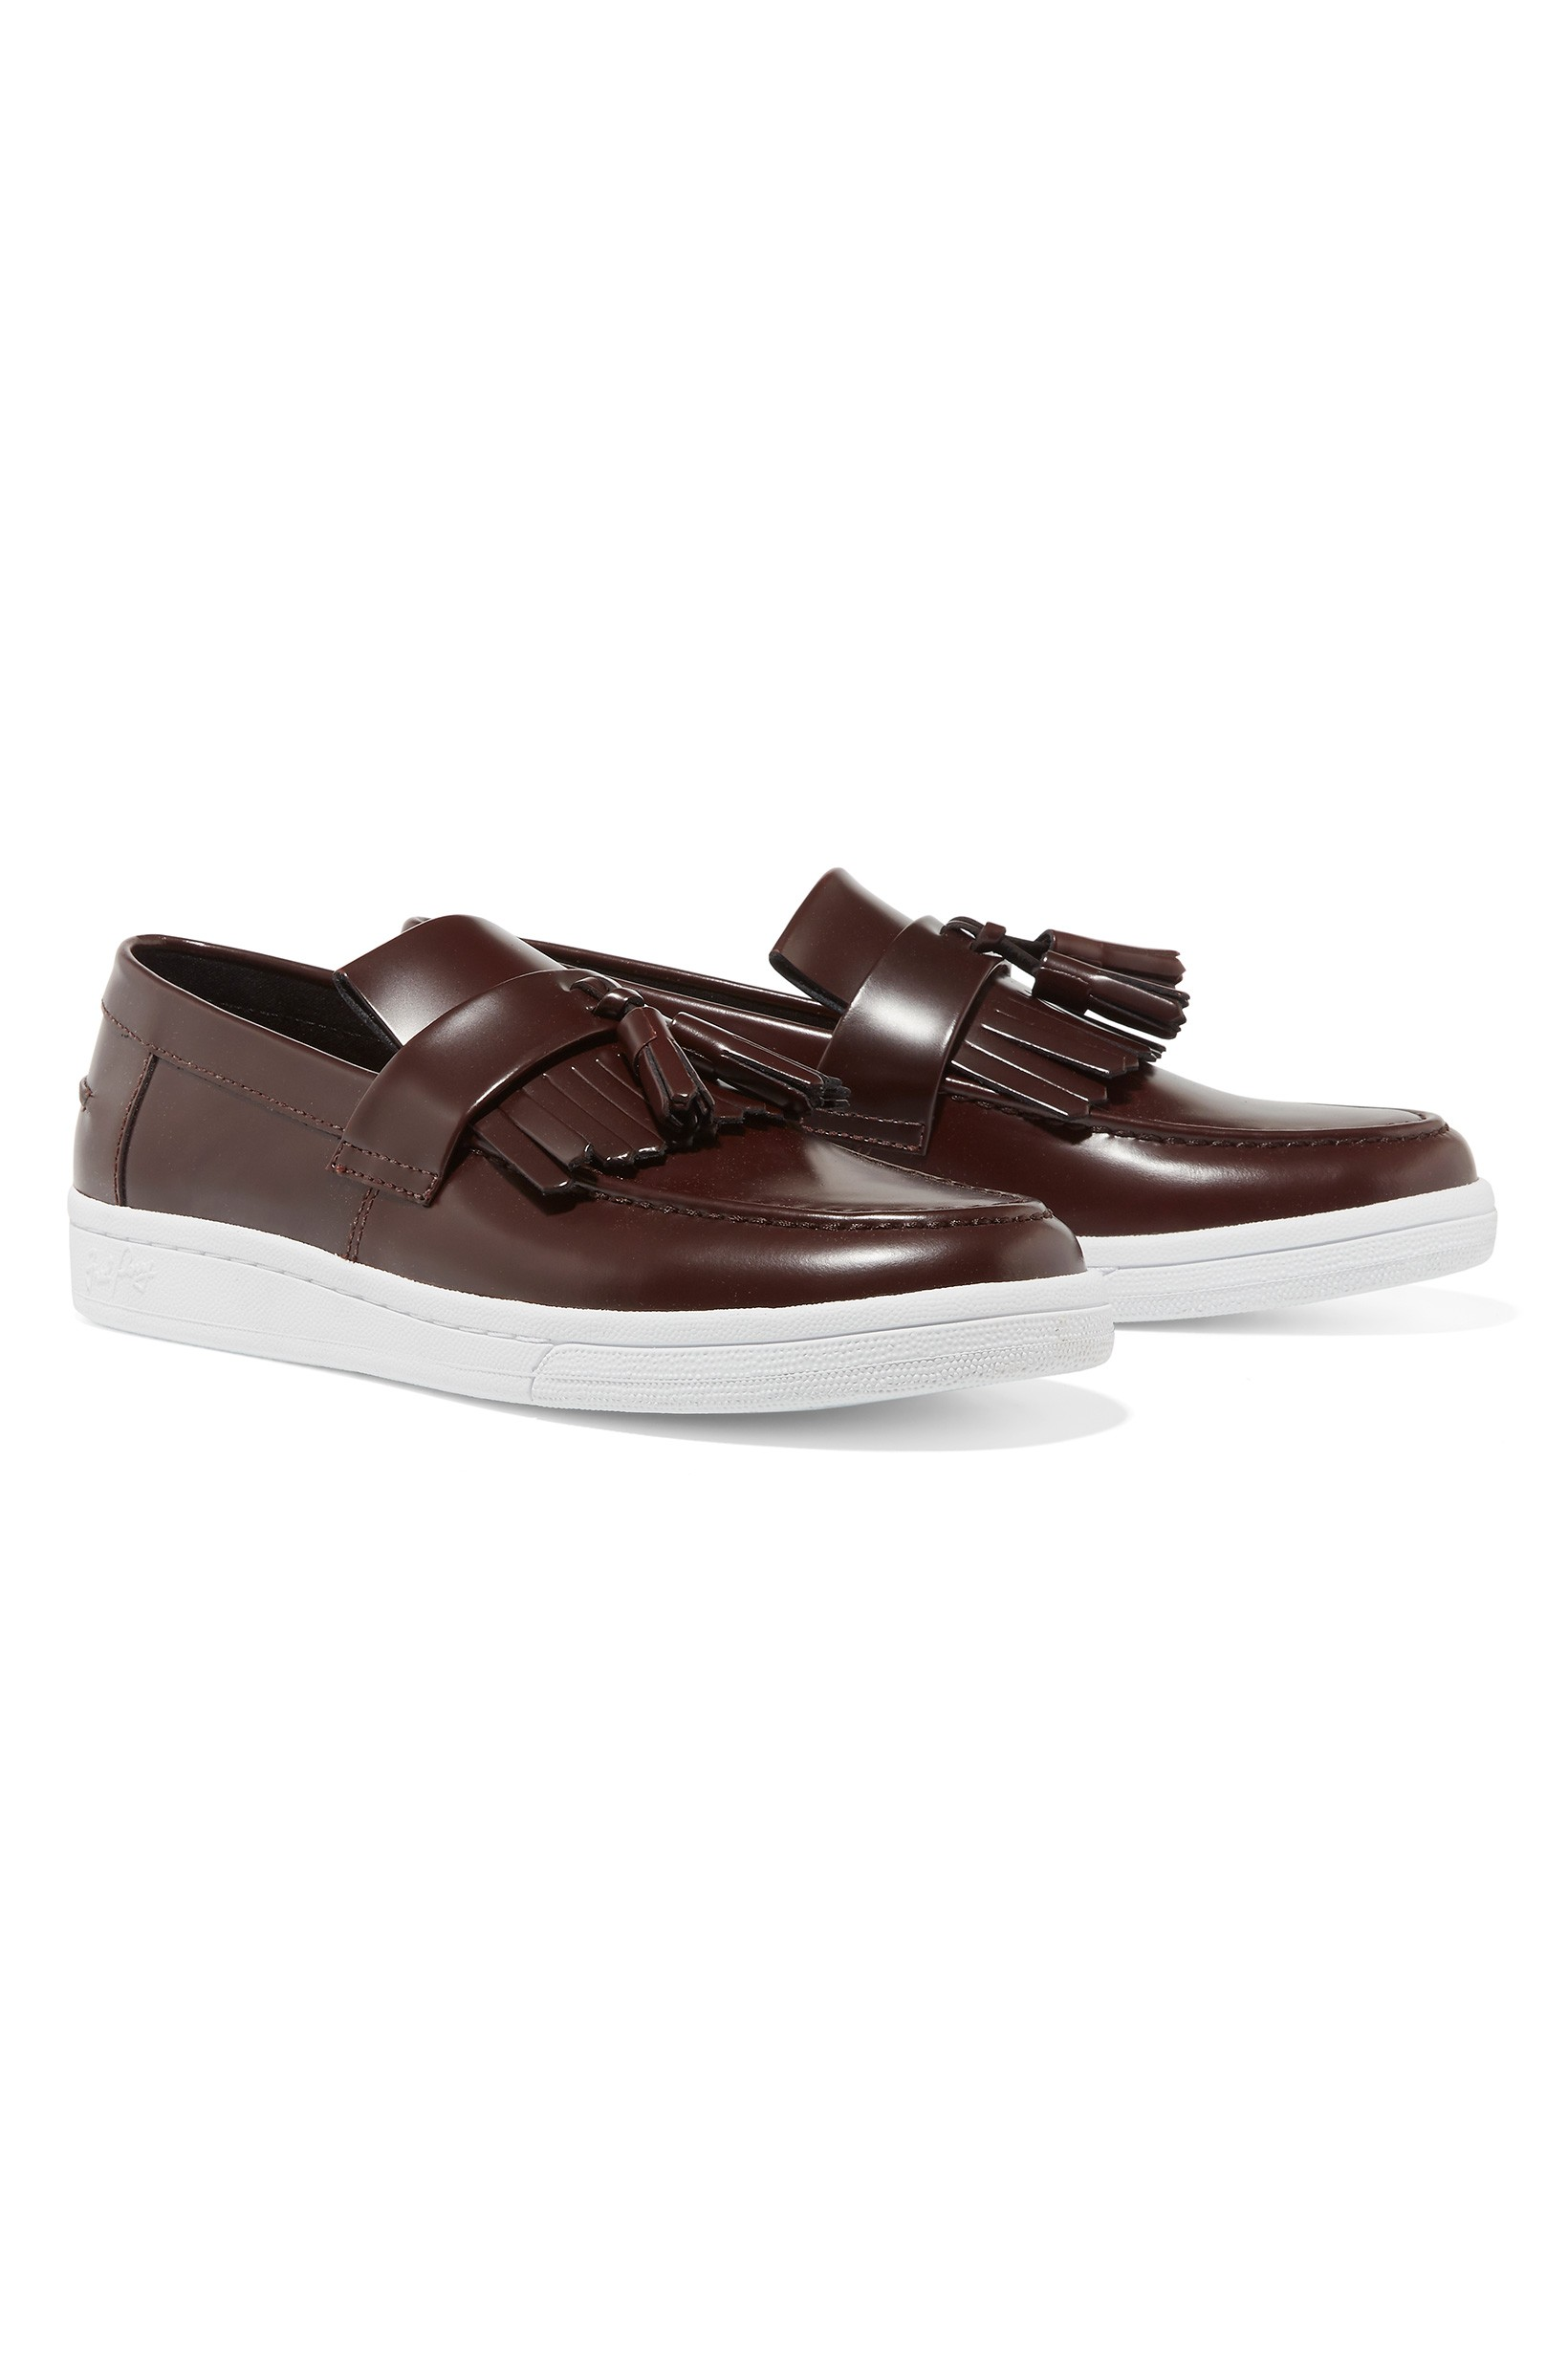 Fred Perry Ox Blood X George Cox B721 Loafer Leather